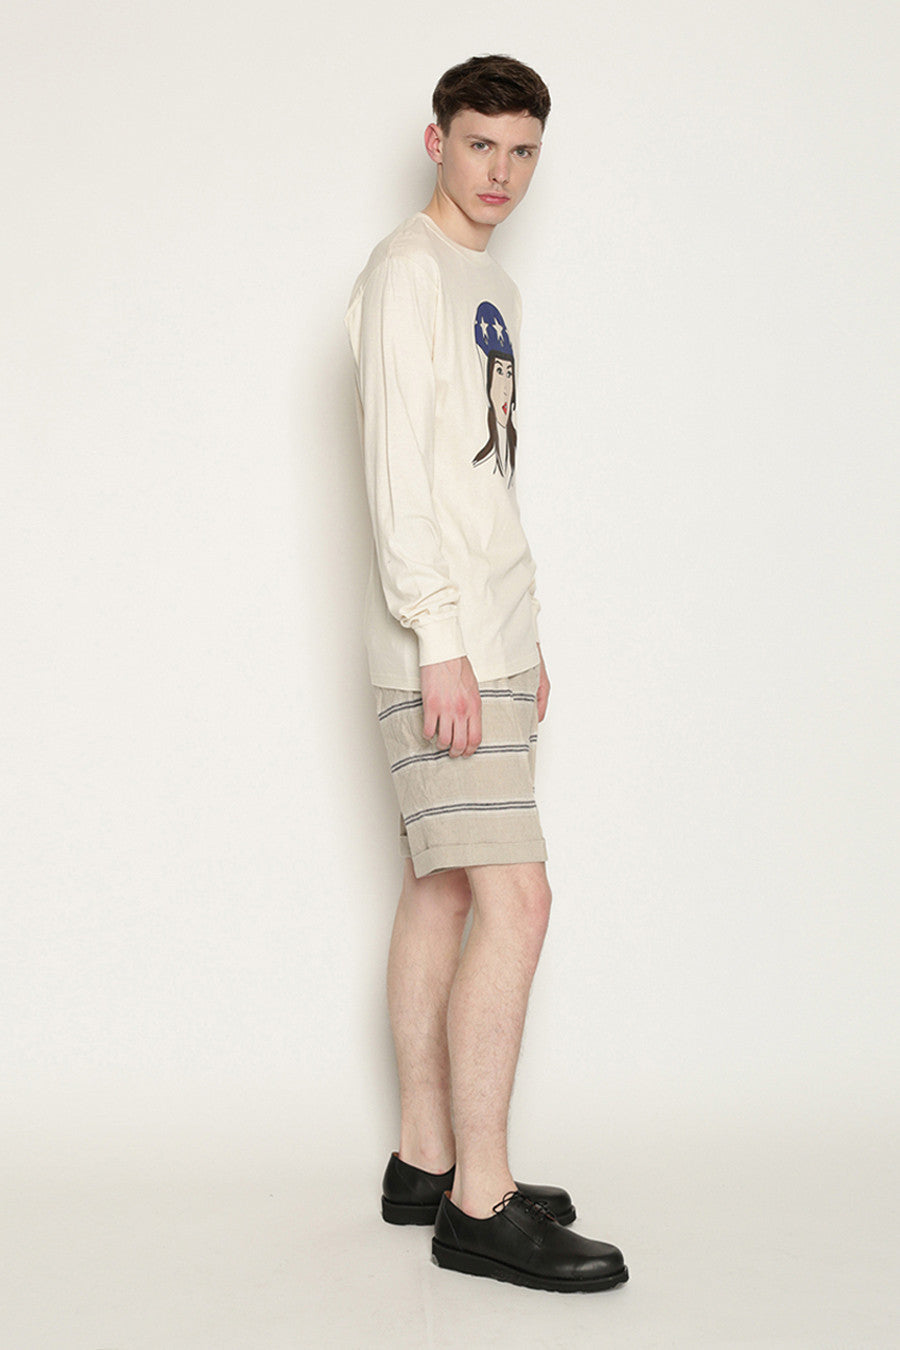 Kreuzberg Shorts in Beige with Navy Stripes